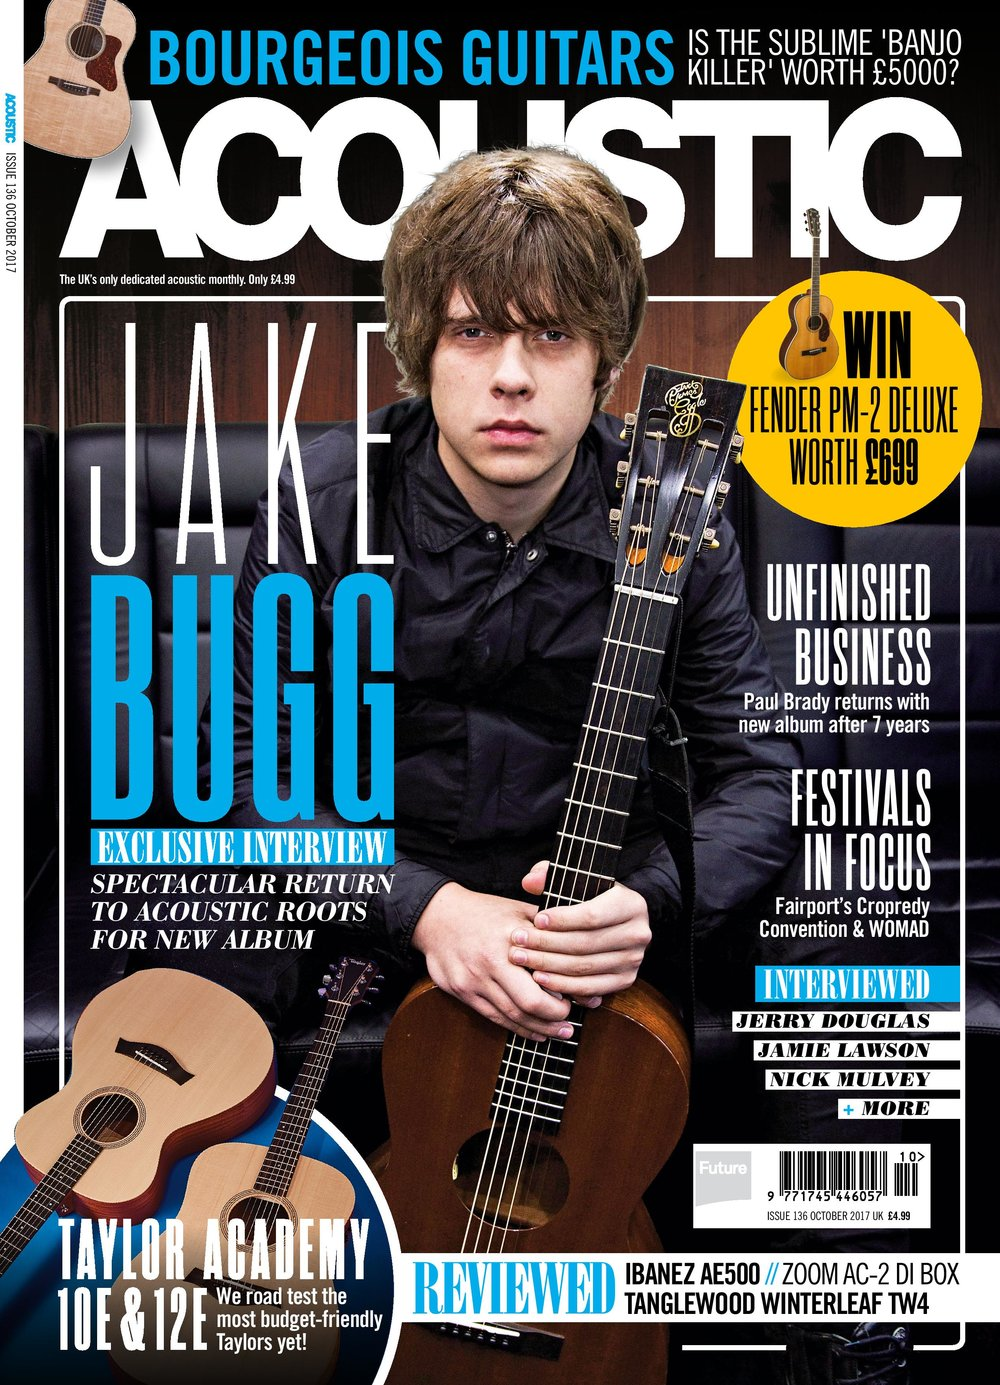 Jake Bugg Front Cover